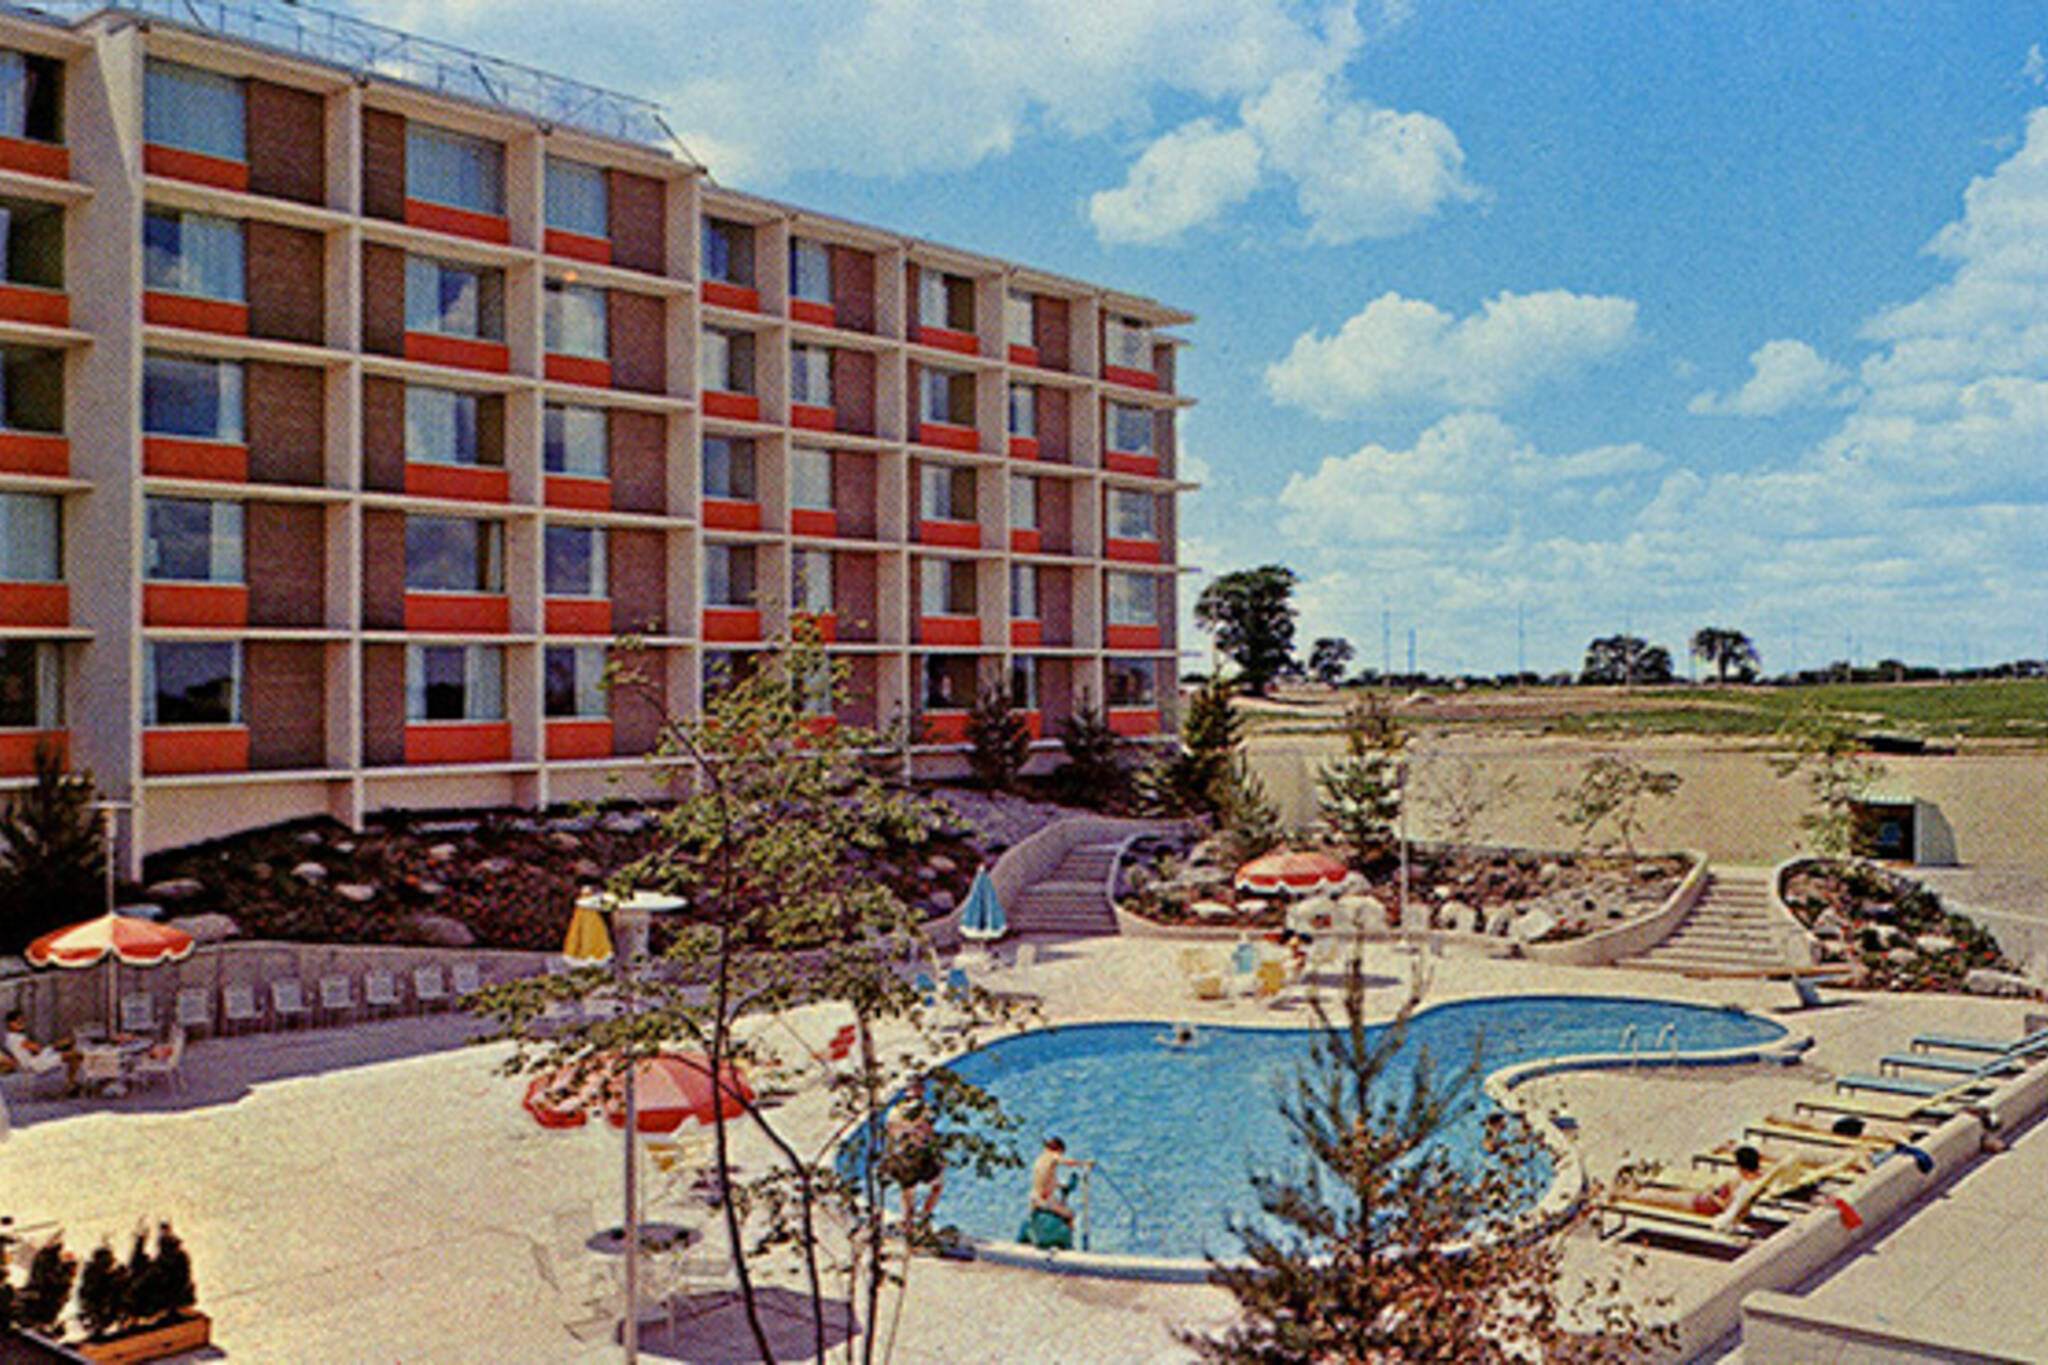 toronto airport hotel strip history